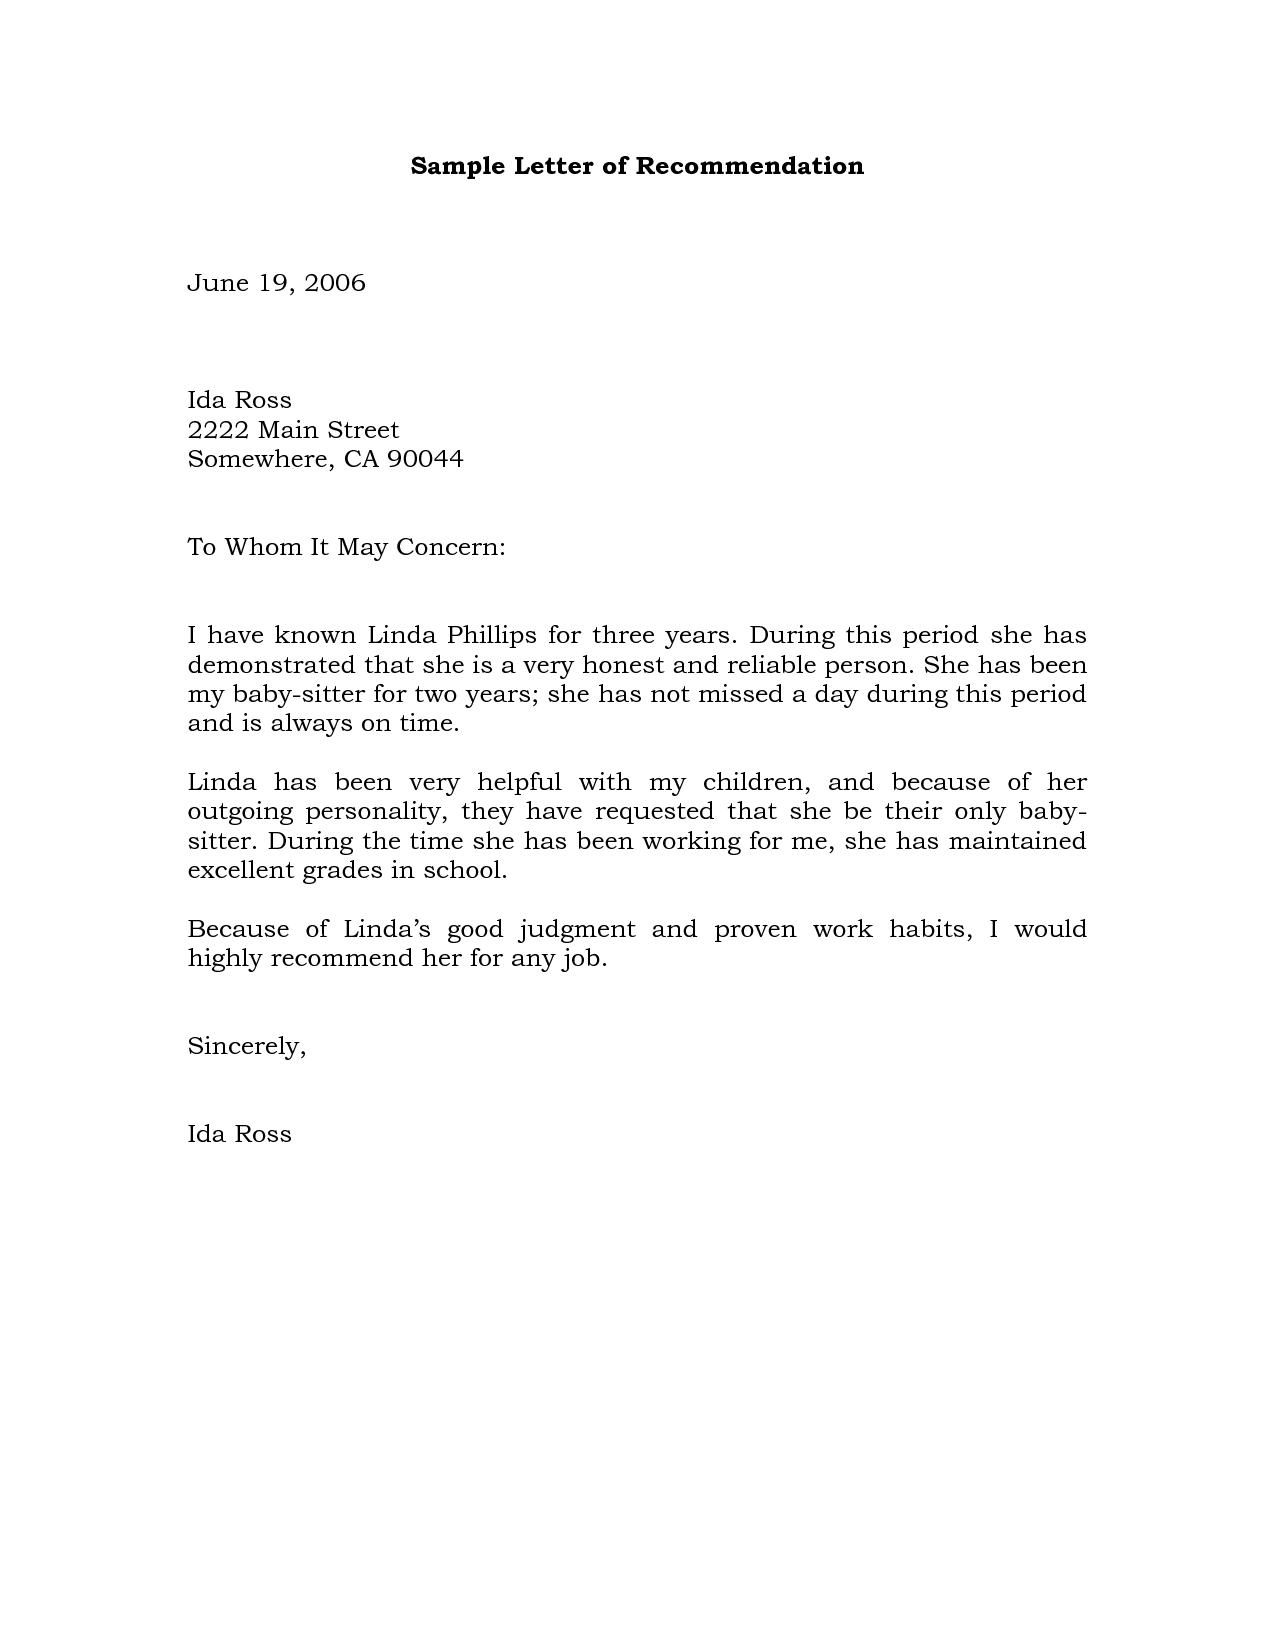 personal recommendation letter for a friend sample